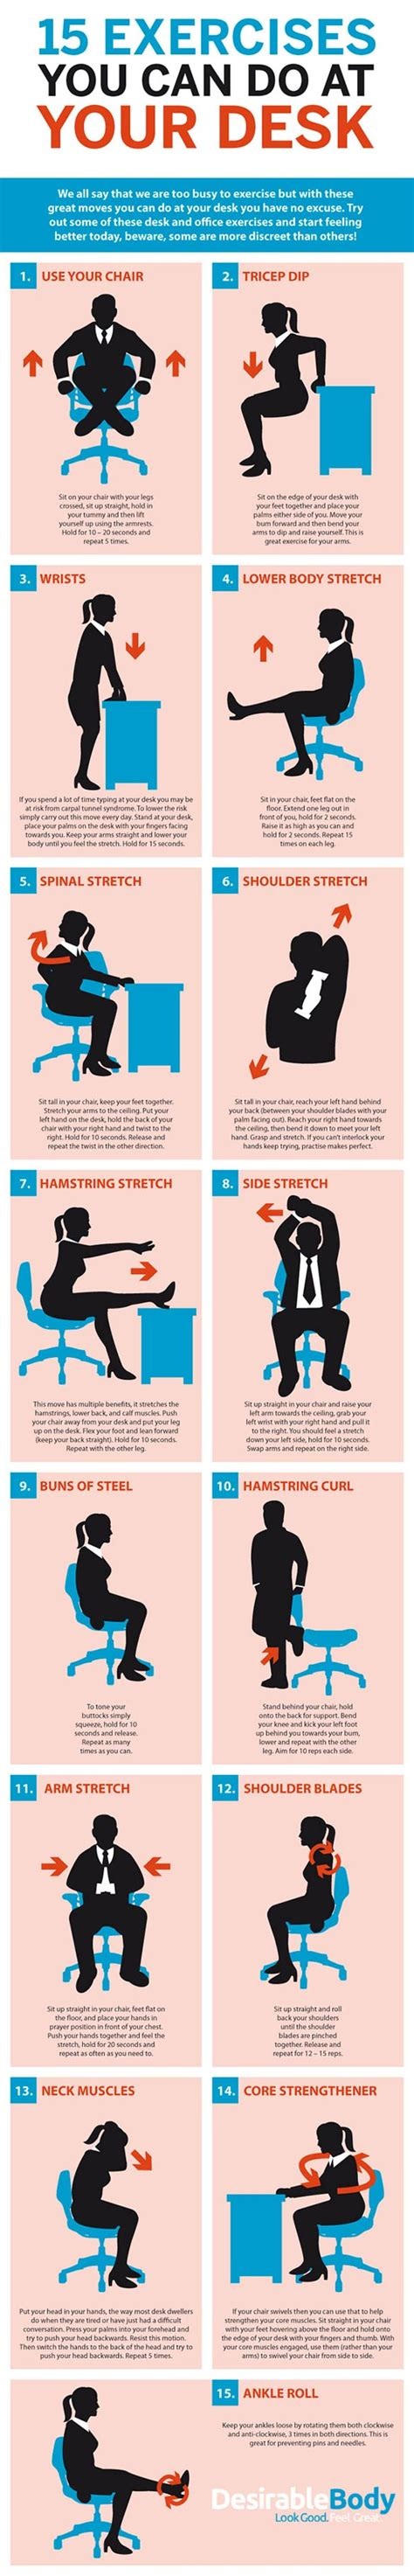 exercises to do at your desk with pictures 15 exercises you can do at your desk